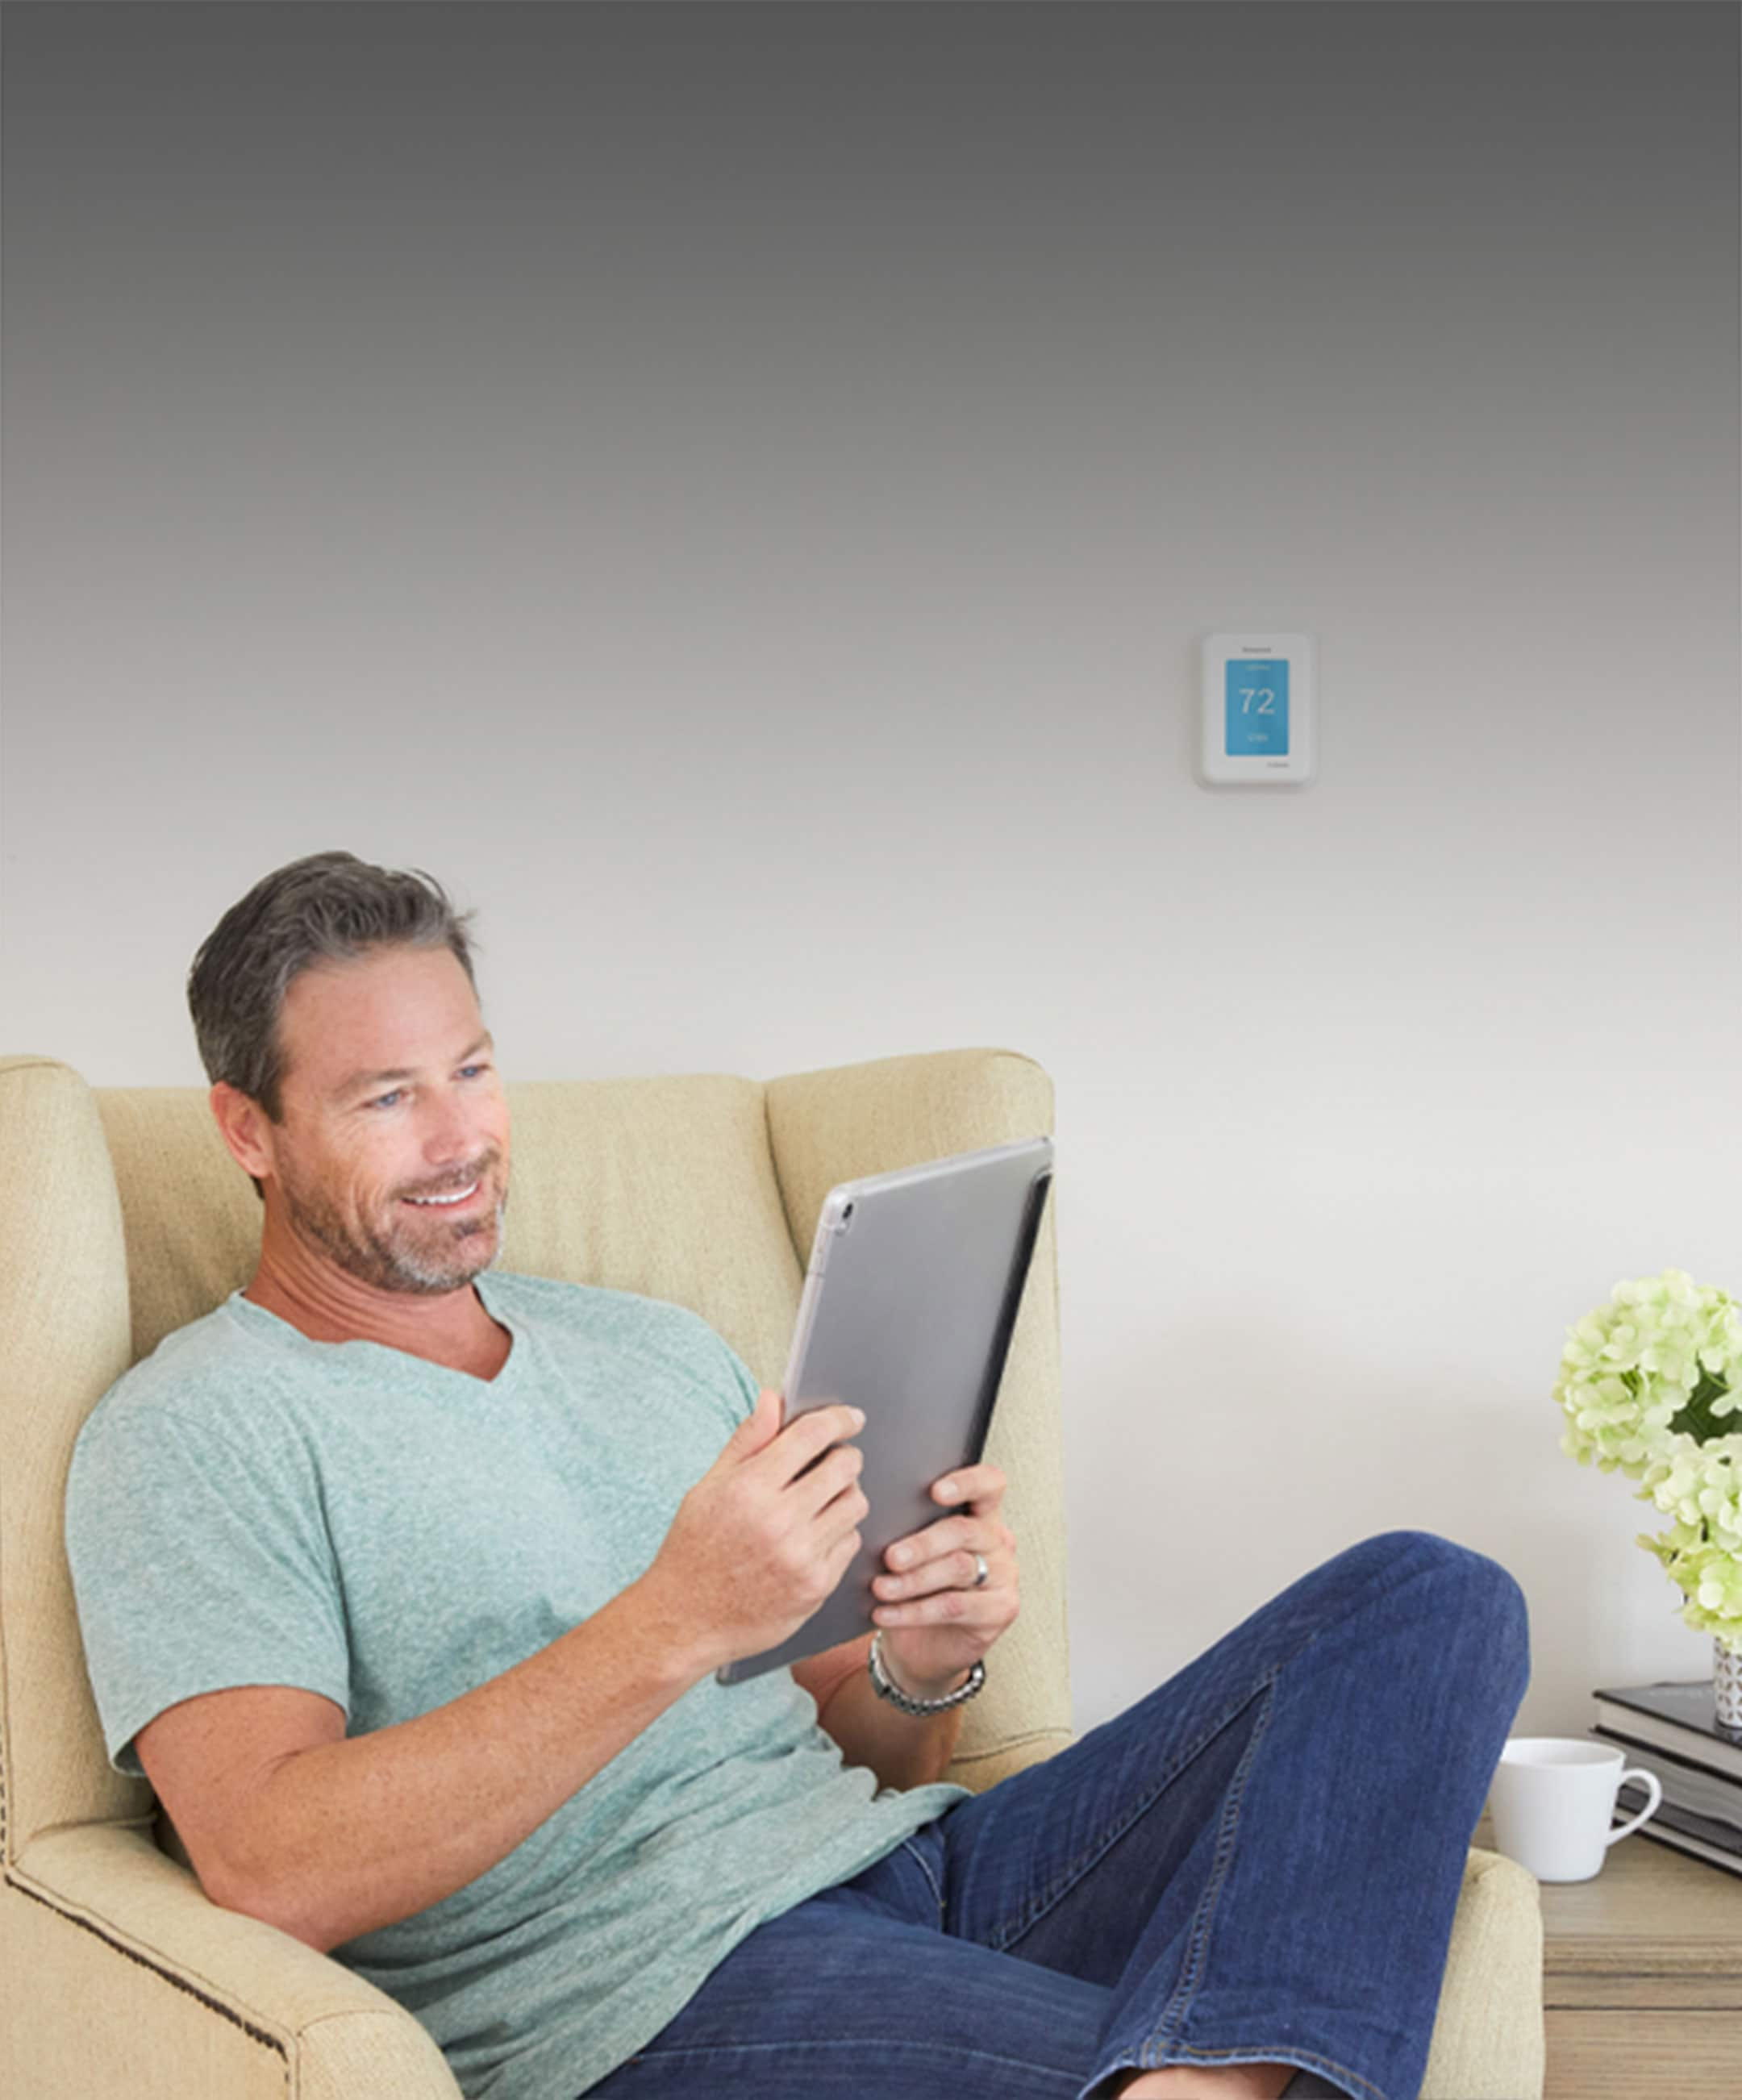 Man sitting in chair enjoying comfortable room controlled by smart thermostat